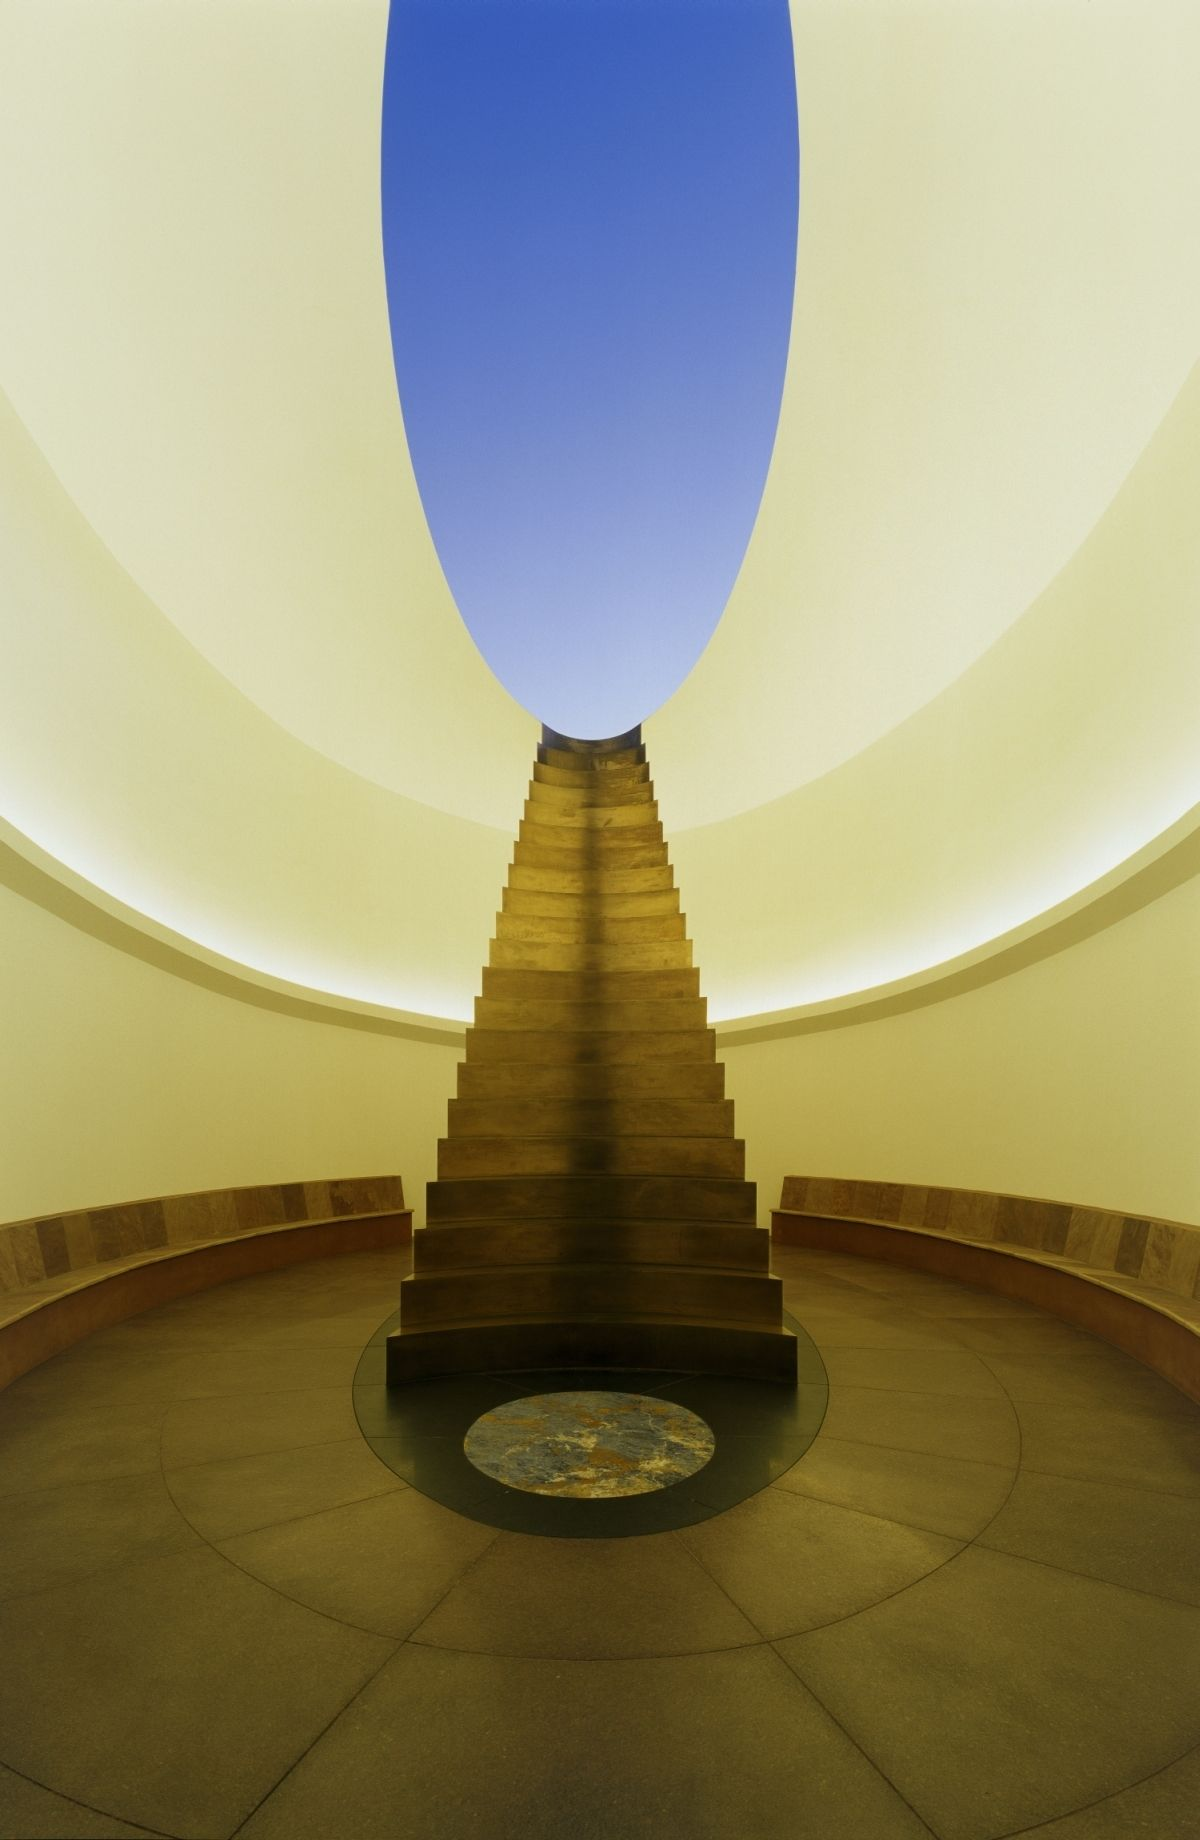 James Turrell: Roden Crater, East Portal. 2010. (Photo by Florian Holzherr)